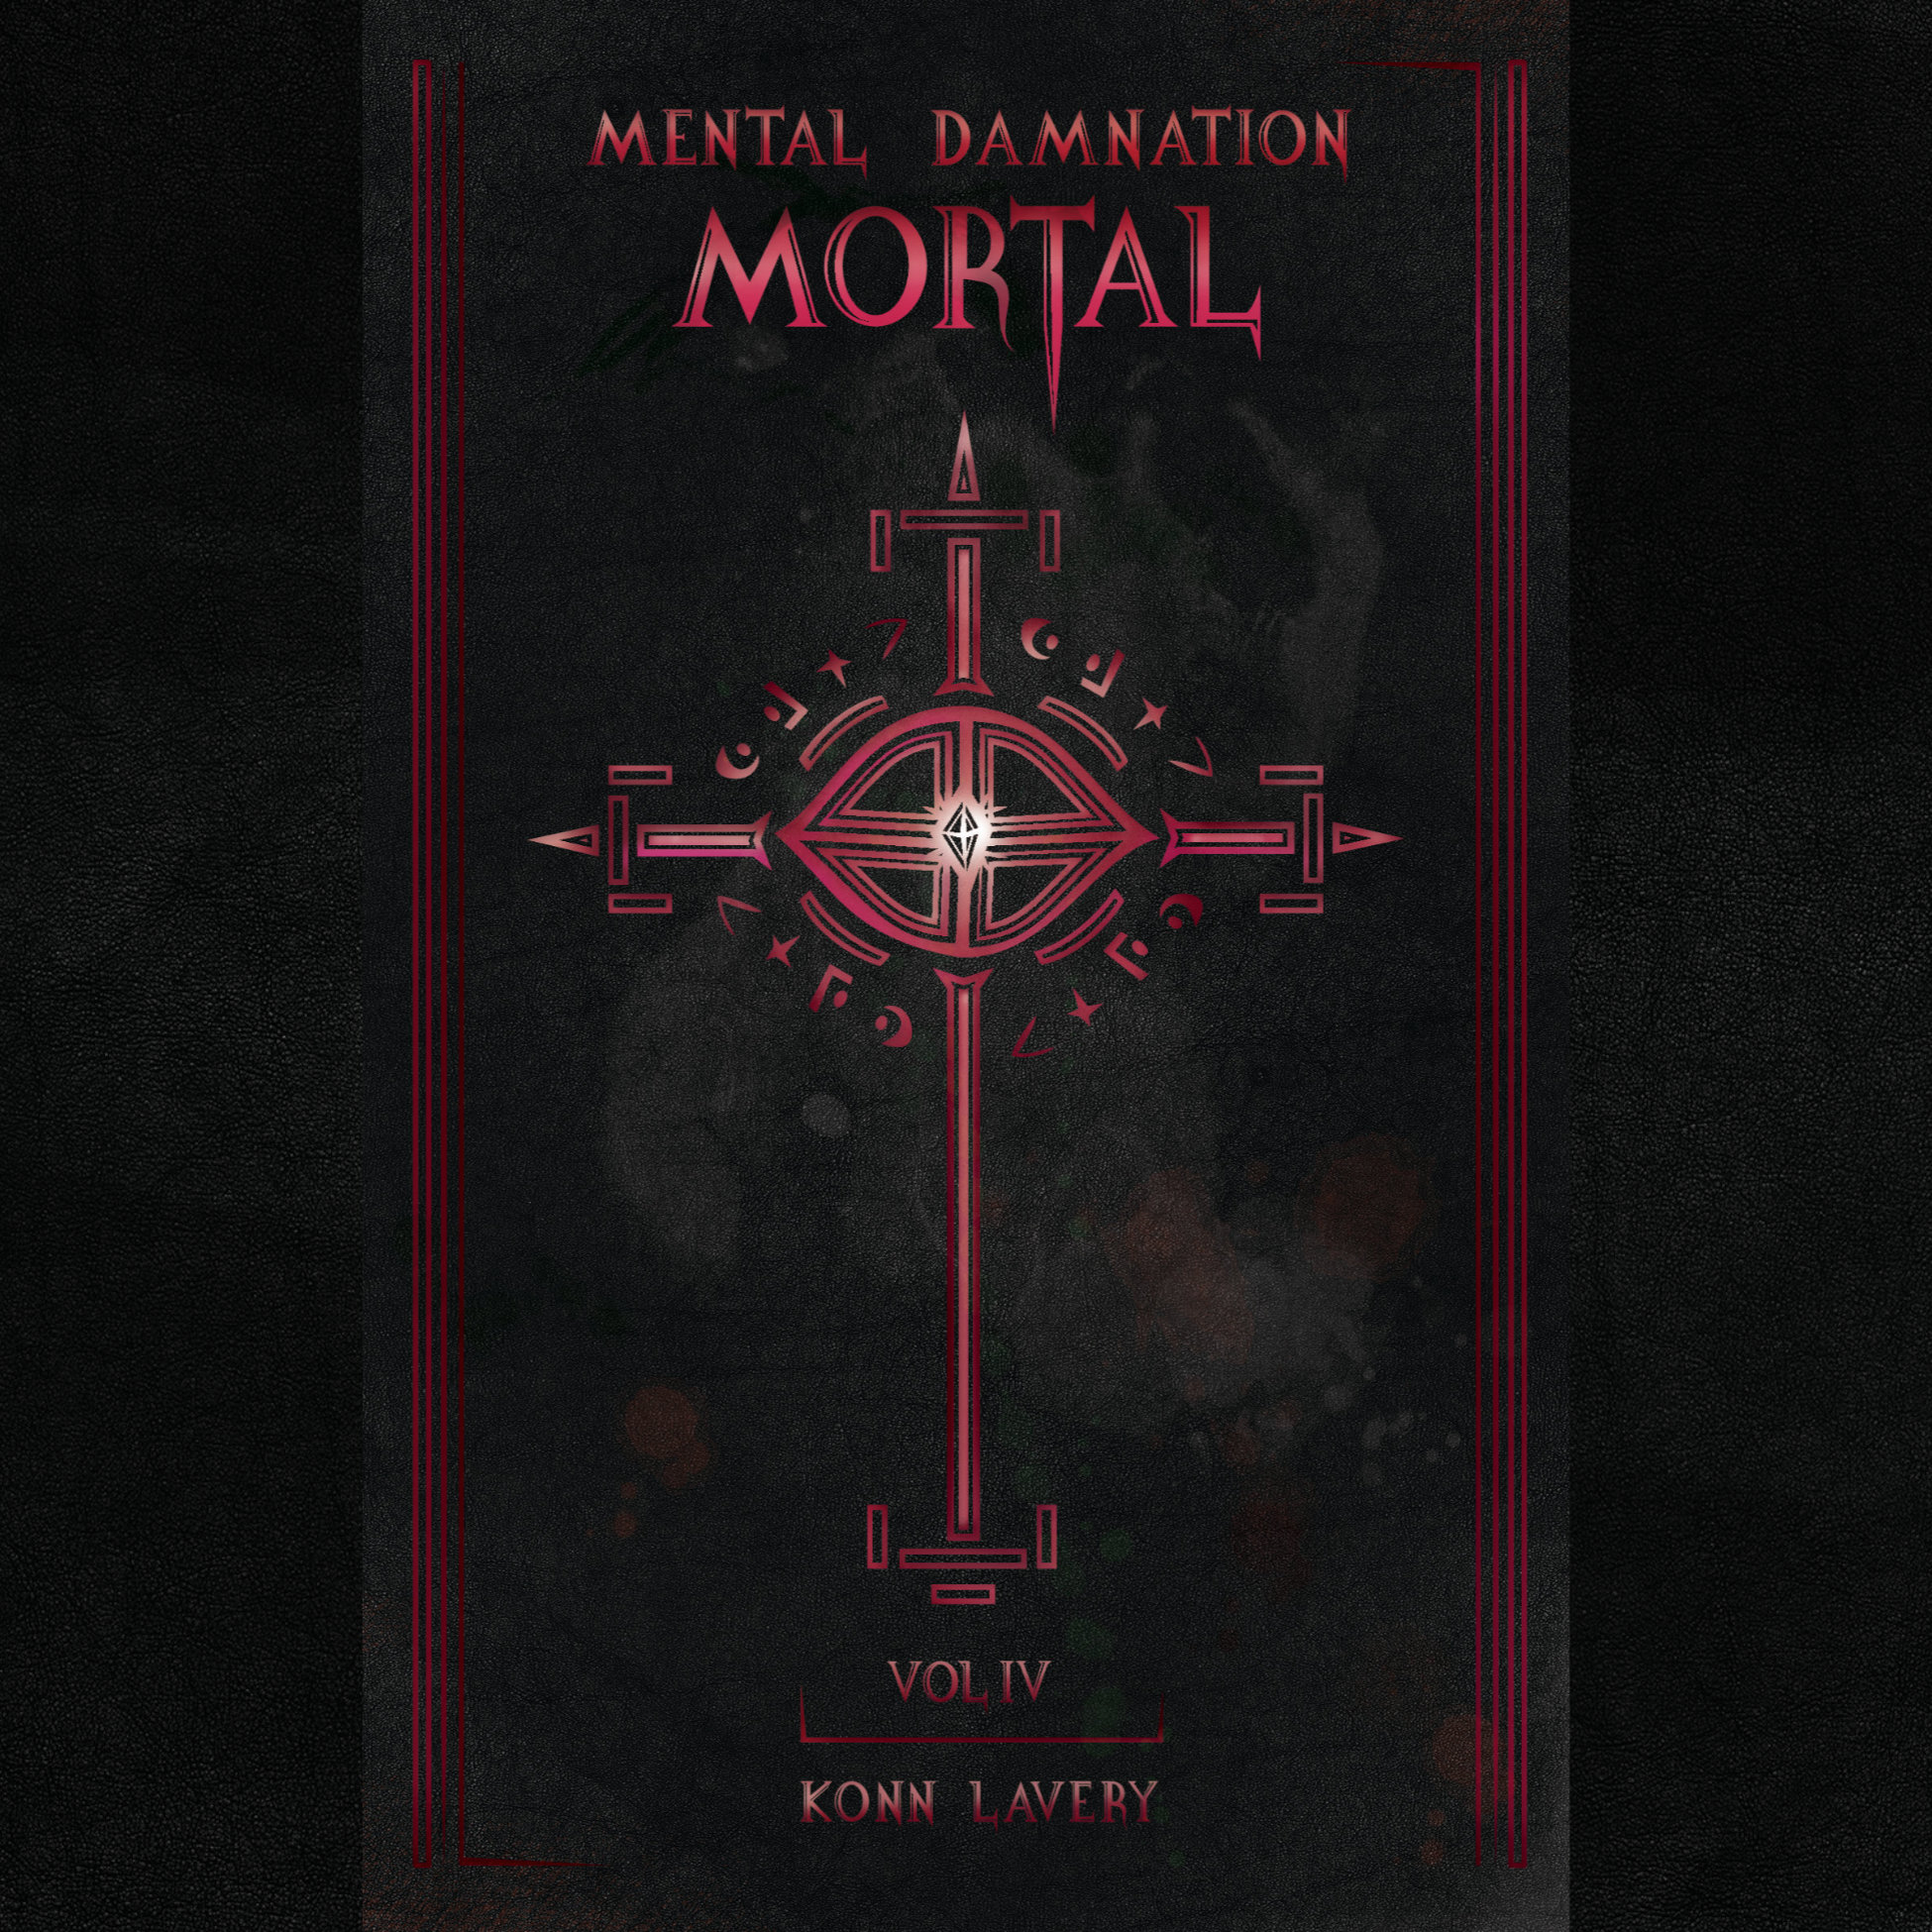 Mental Damnation IV Title and Synopsis Reveal